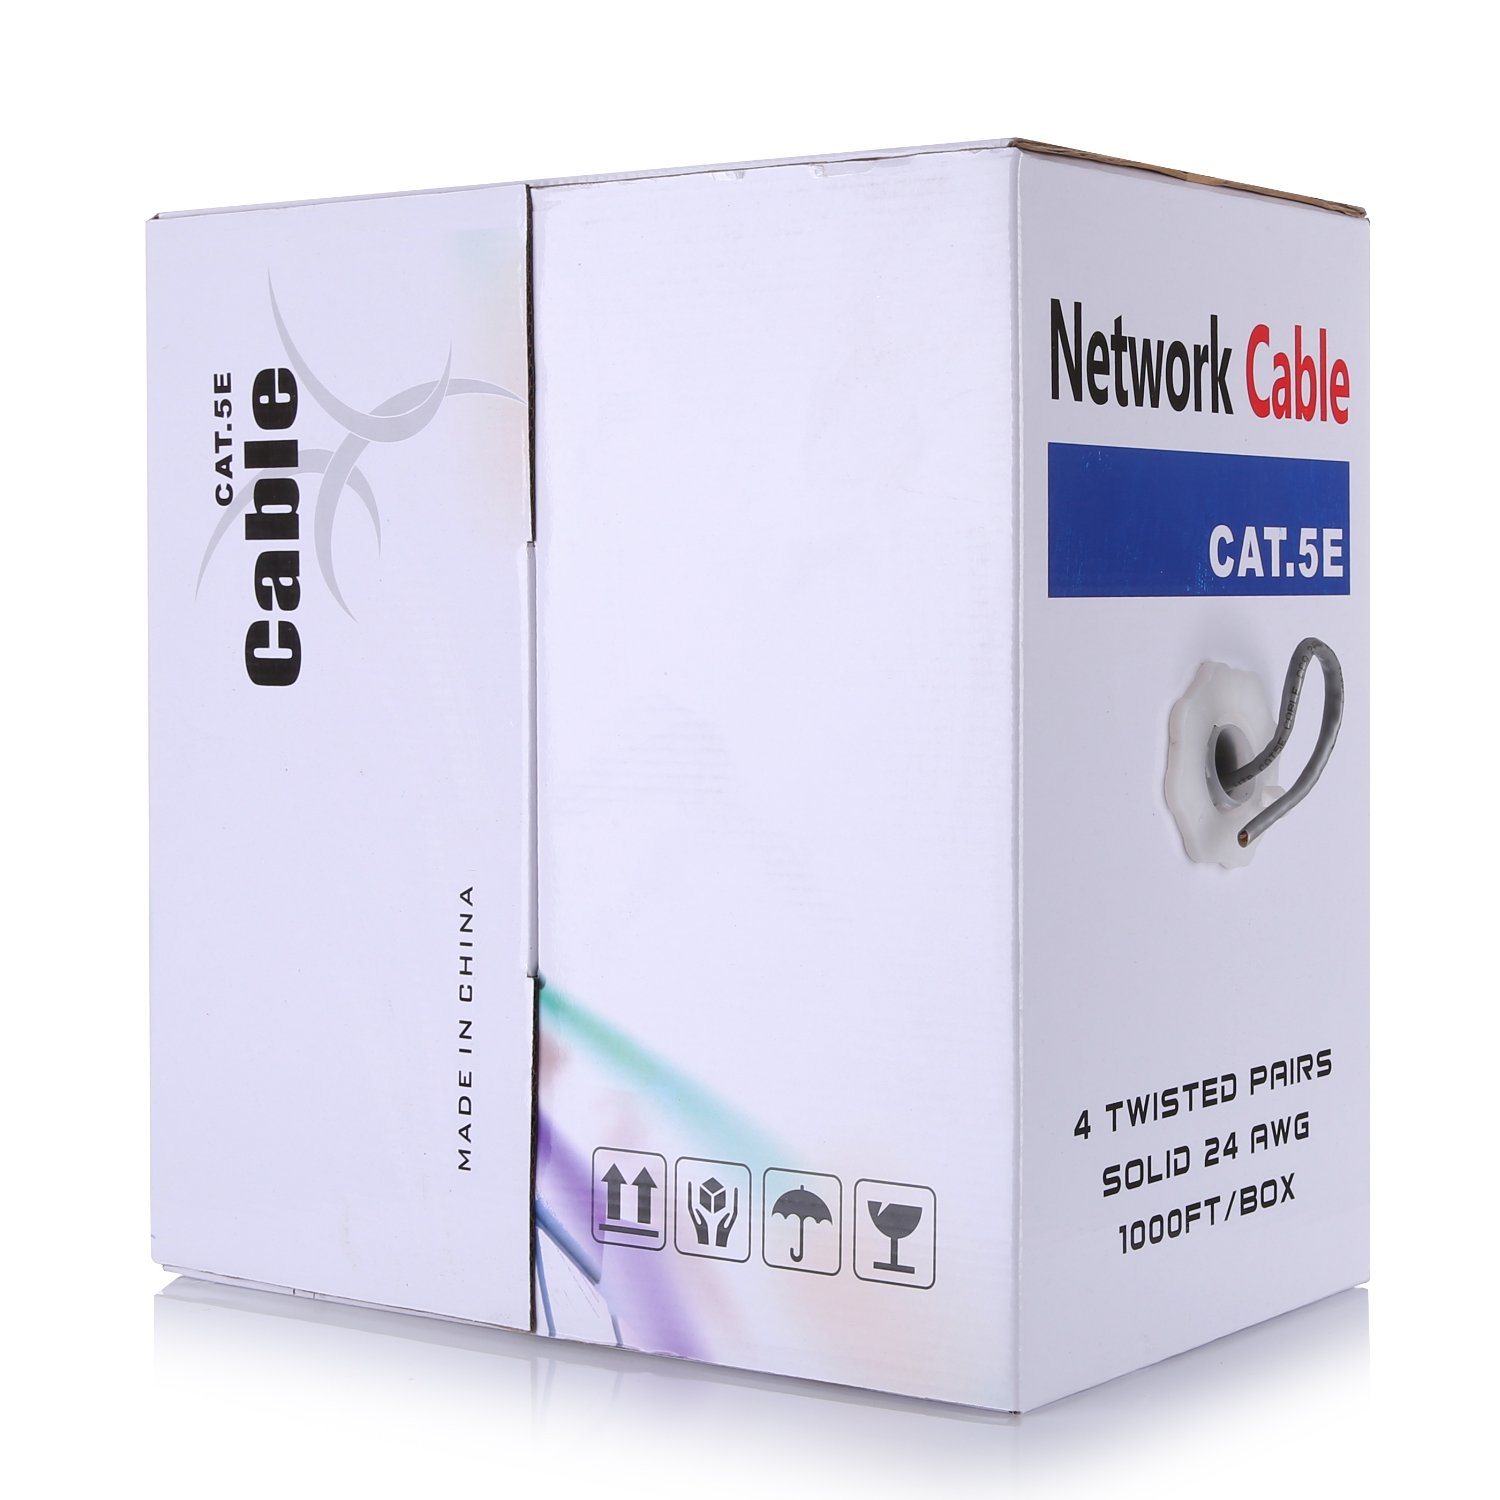 ANNKE 1000ft/300M Cat5e Unshielded (UTP) Ethernet Network Cable with Solid Conductors, 4 Pairs 24AWG Copper Clad Aluminum